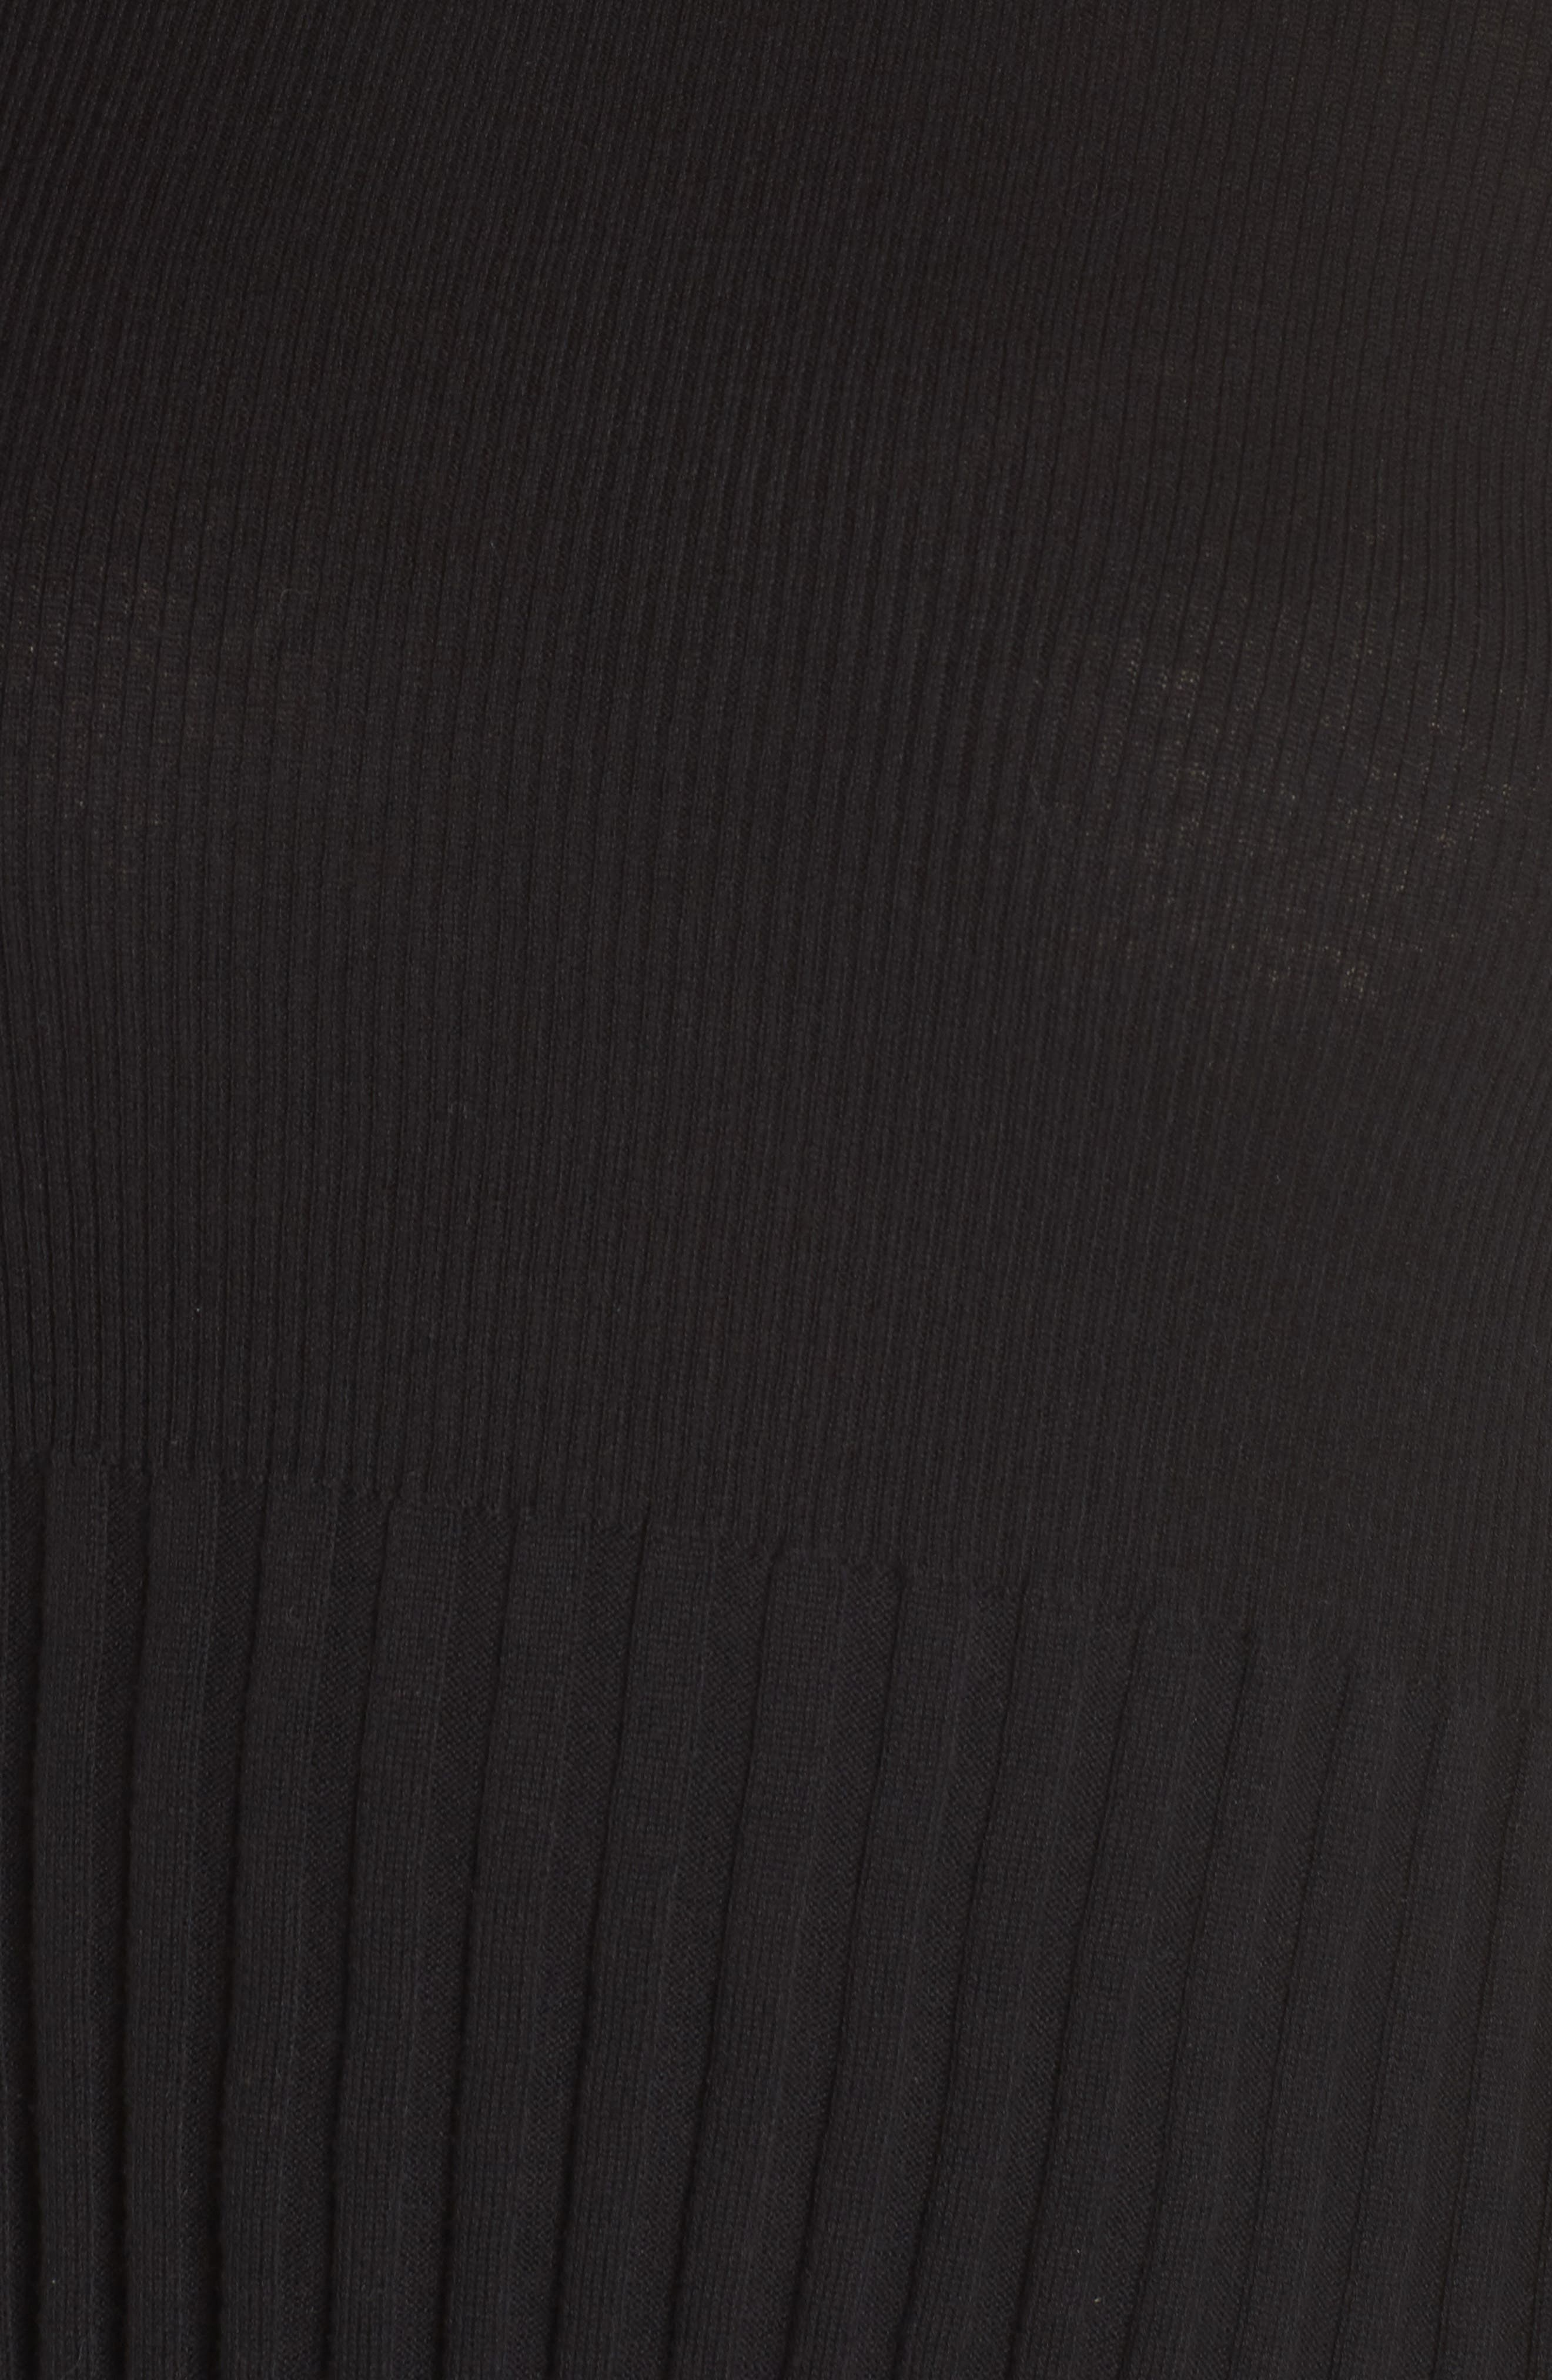 Ribbed Cotton Blend Sweater,                             Alternate thumbnail 6, color,                             001